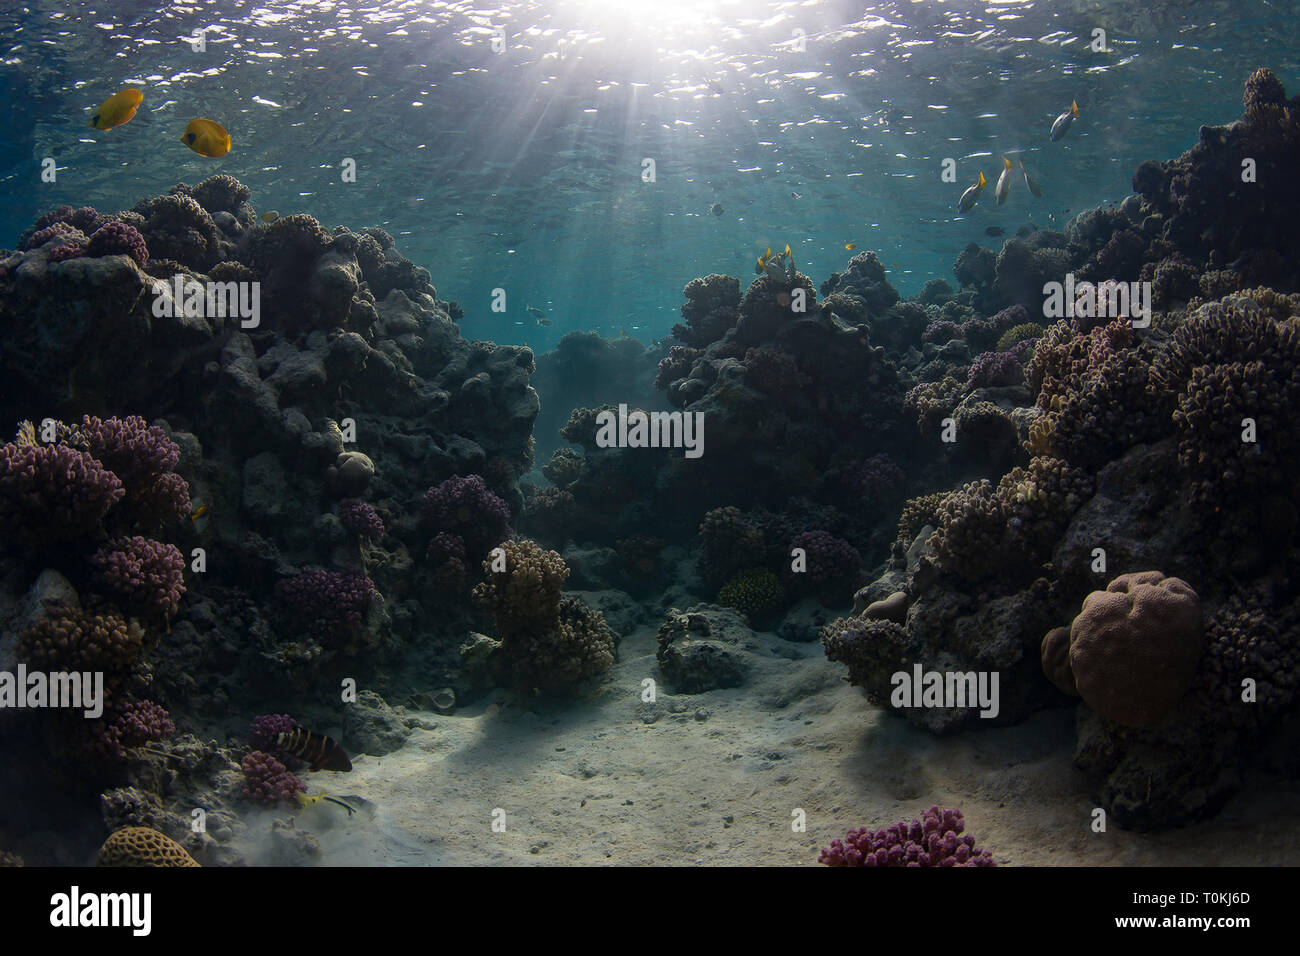 Sunrise on Marsa Nakari coral reef in the Red Sea, Egypt - Stock Image